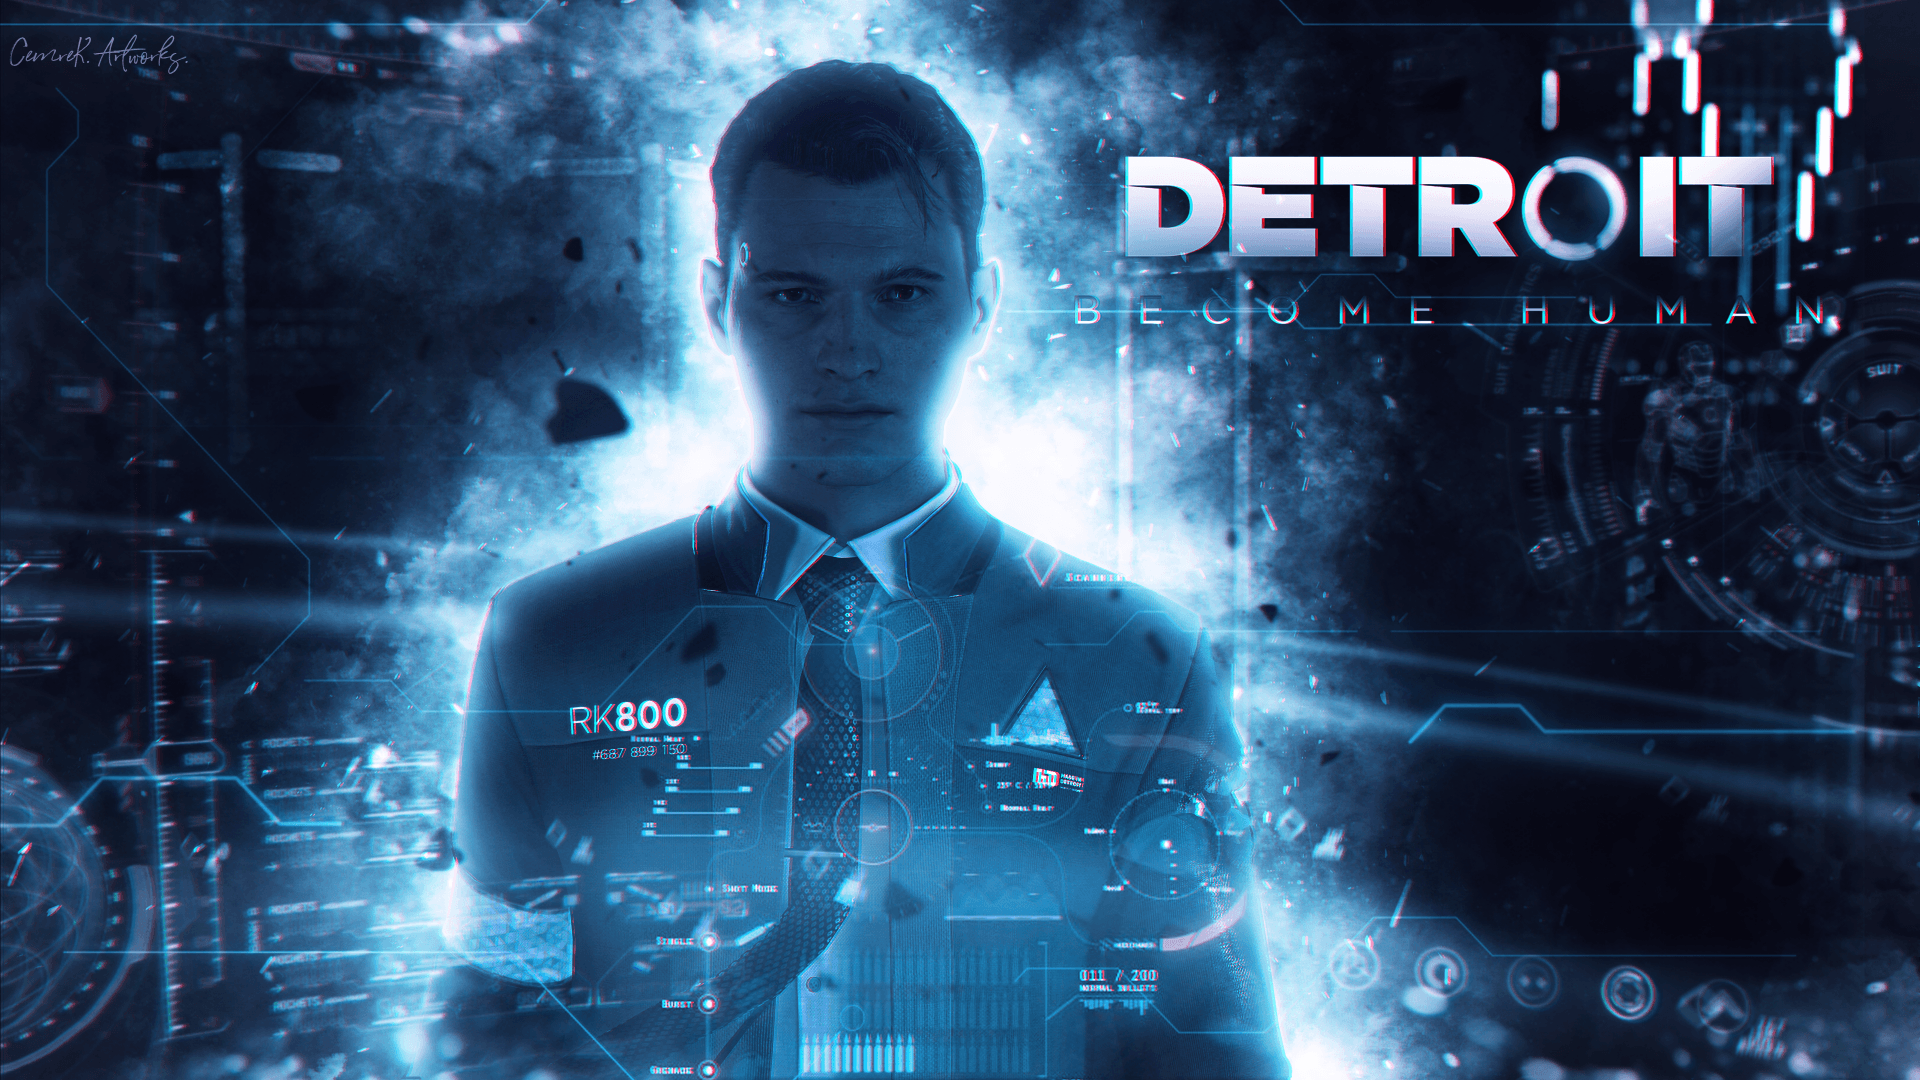 Wallpapers Detroit: Become Human, poster, 4K, Games